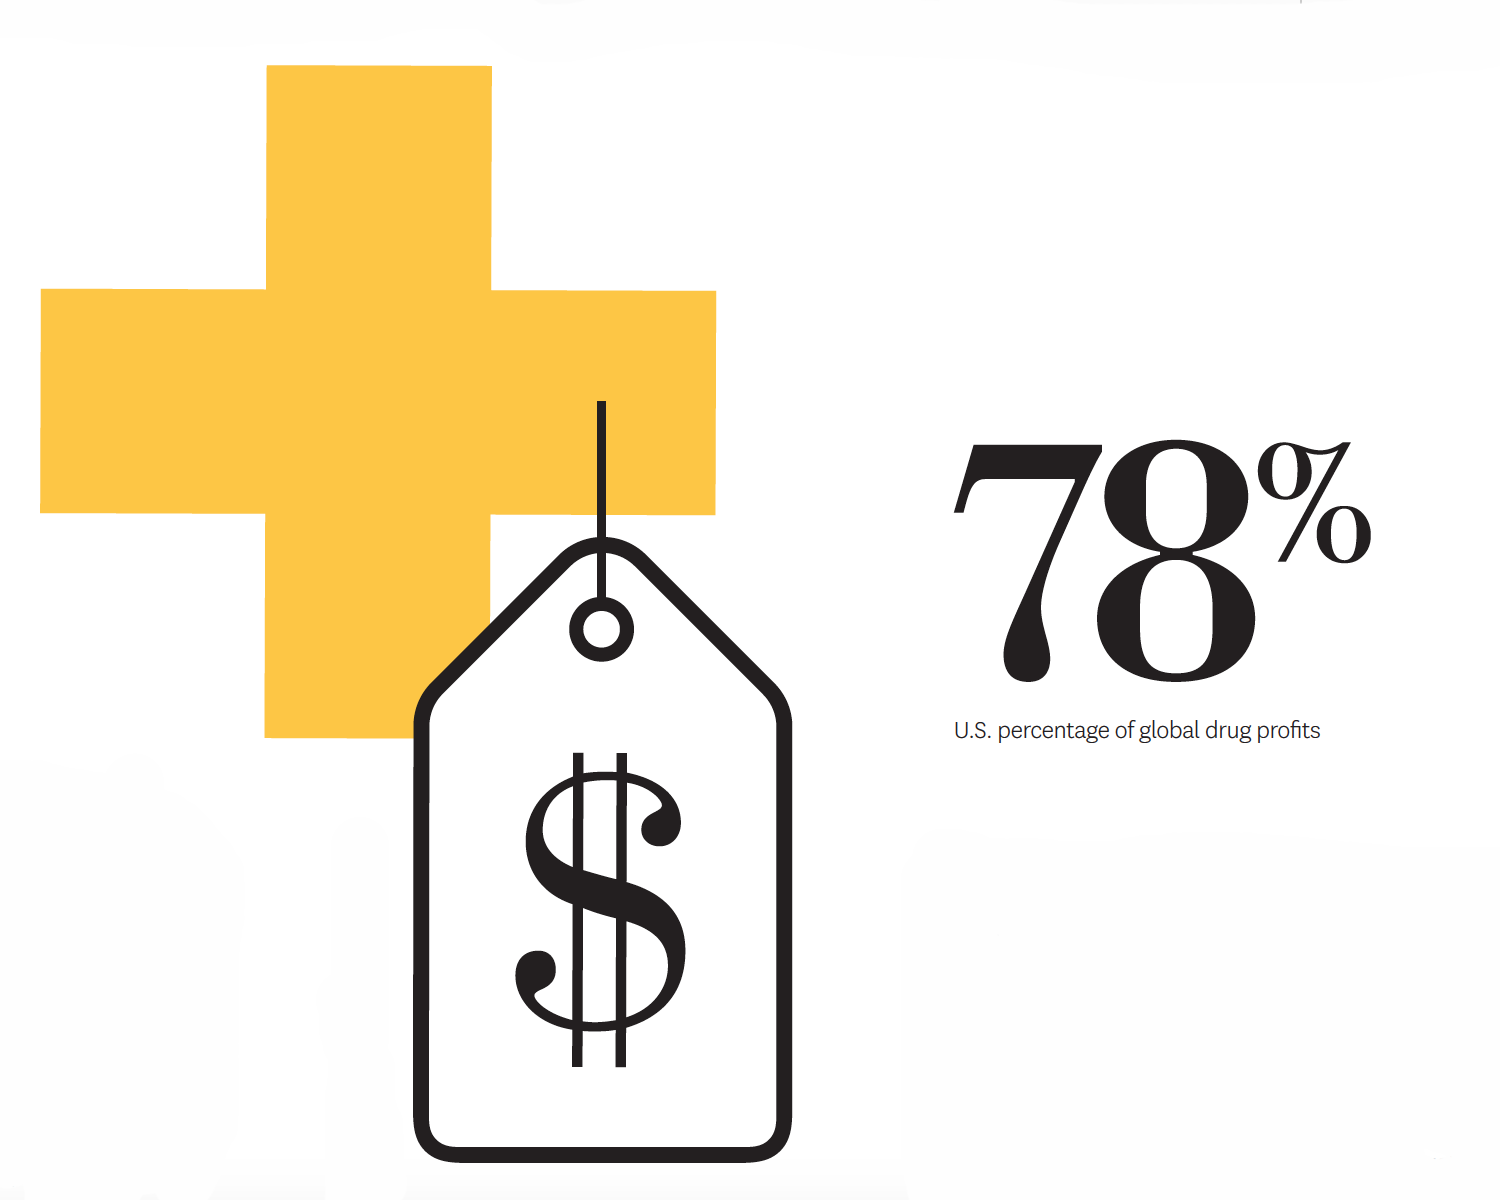 The U.S. accounts for 78% of global drug profits.